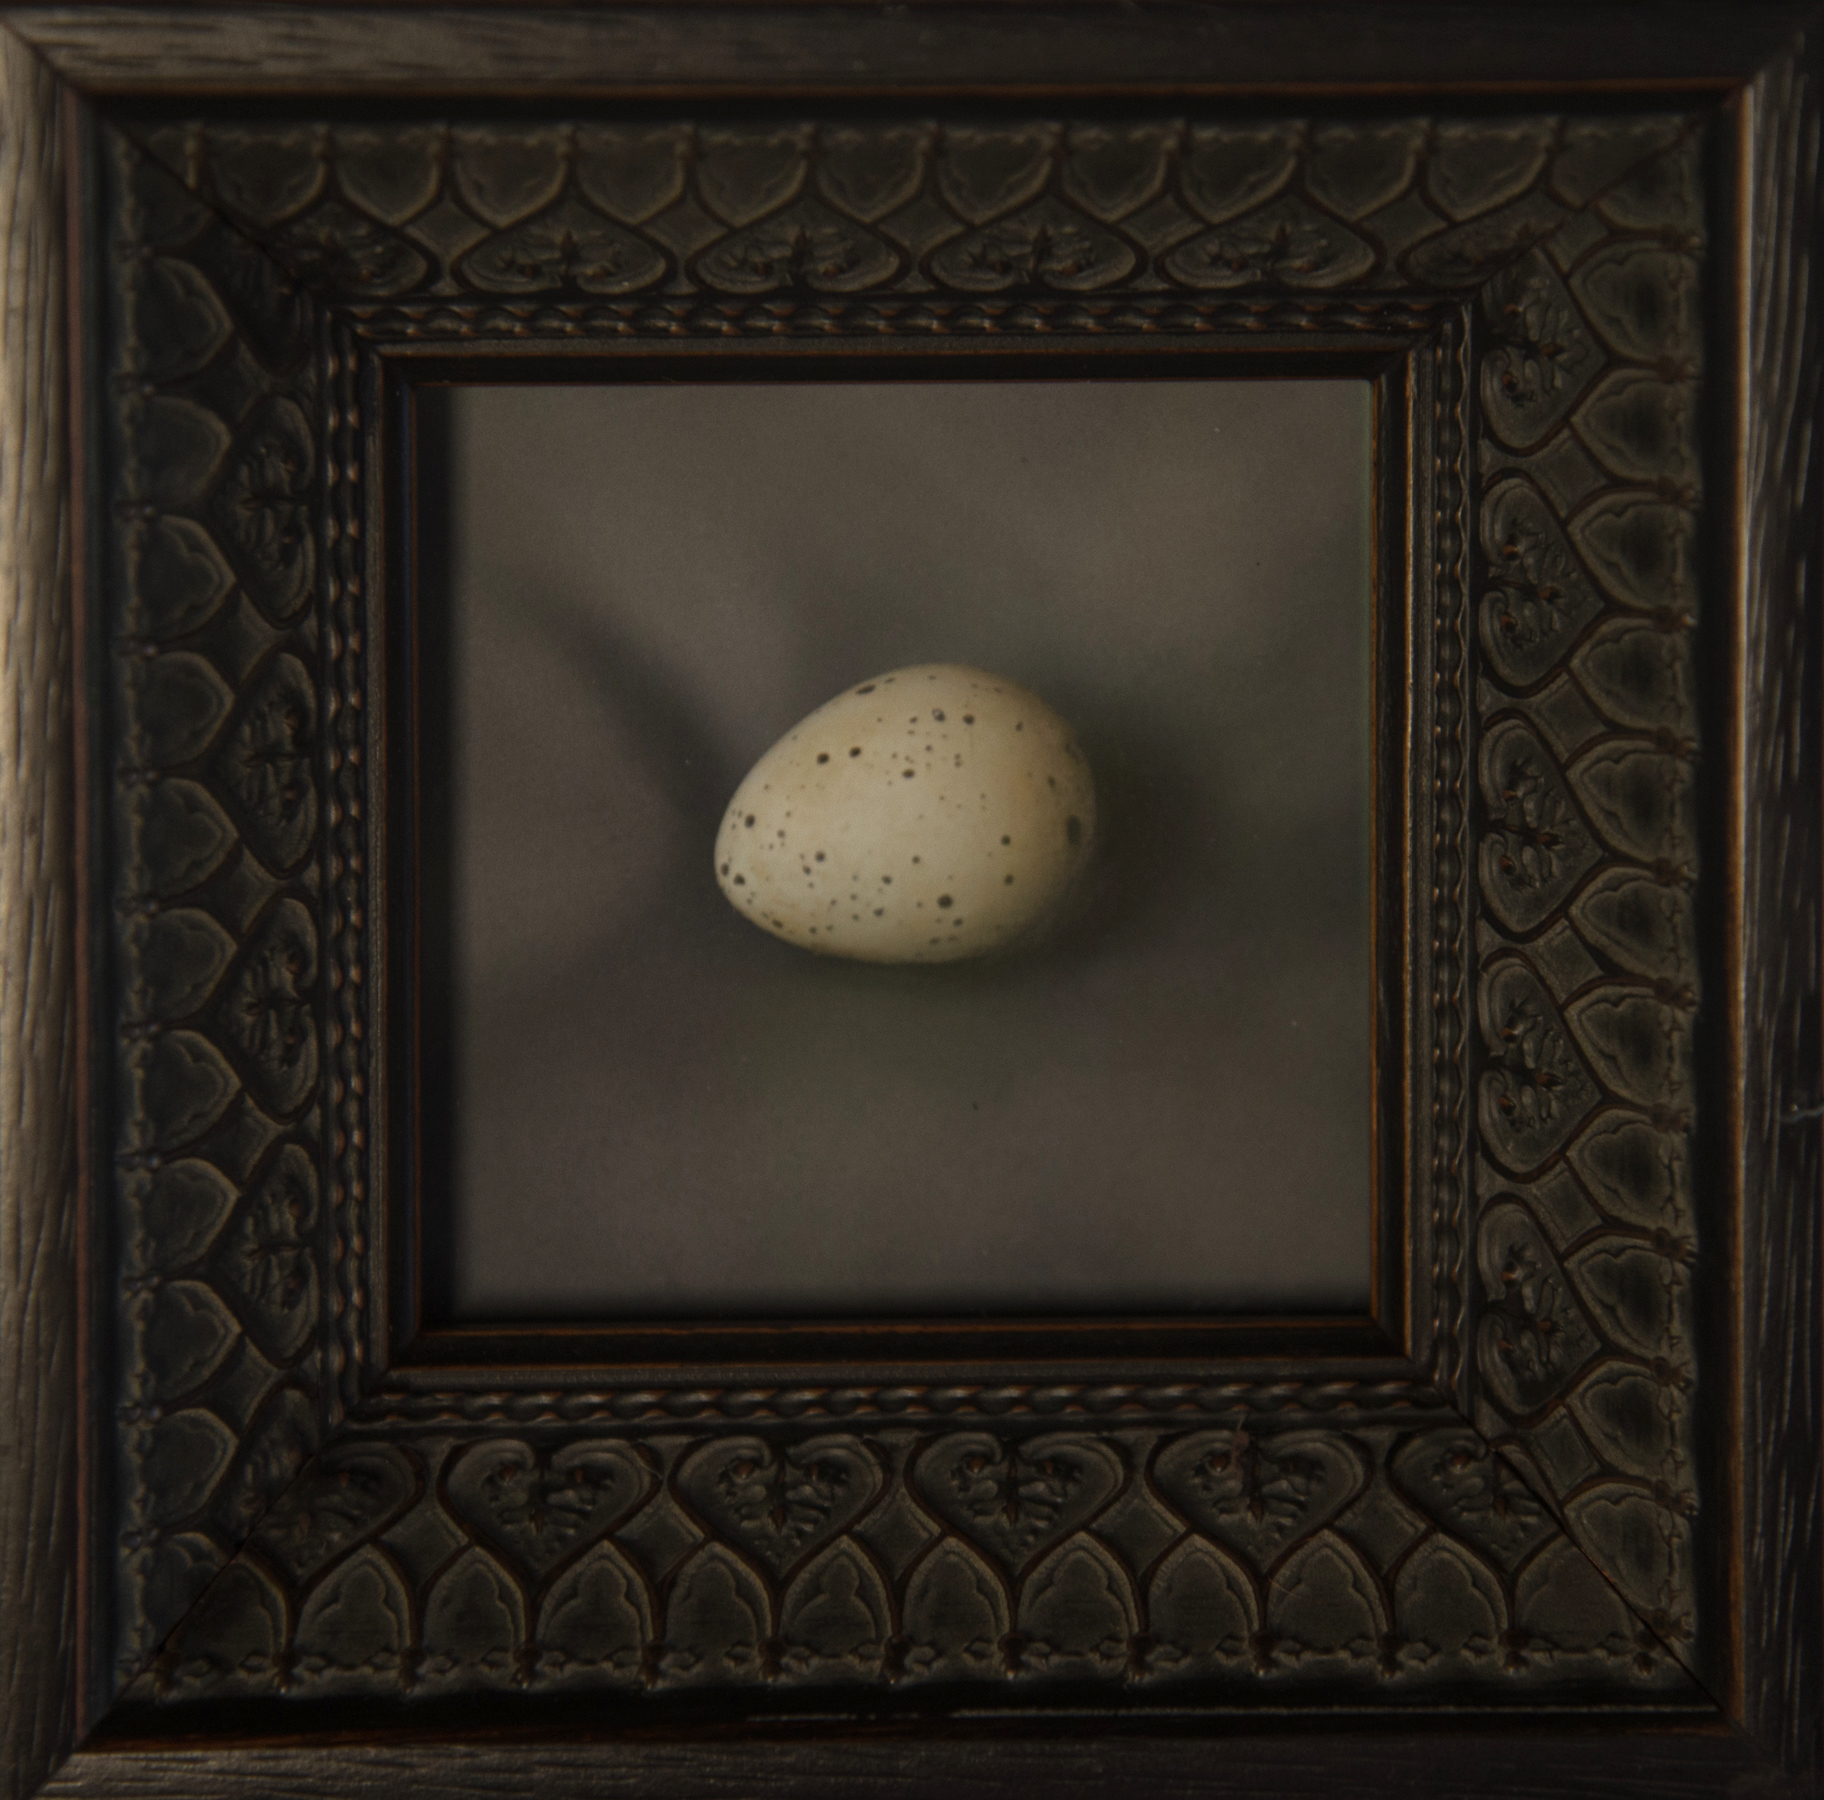 Kate Breakey, Quail Egg 21, Catherine Couturier Gallery